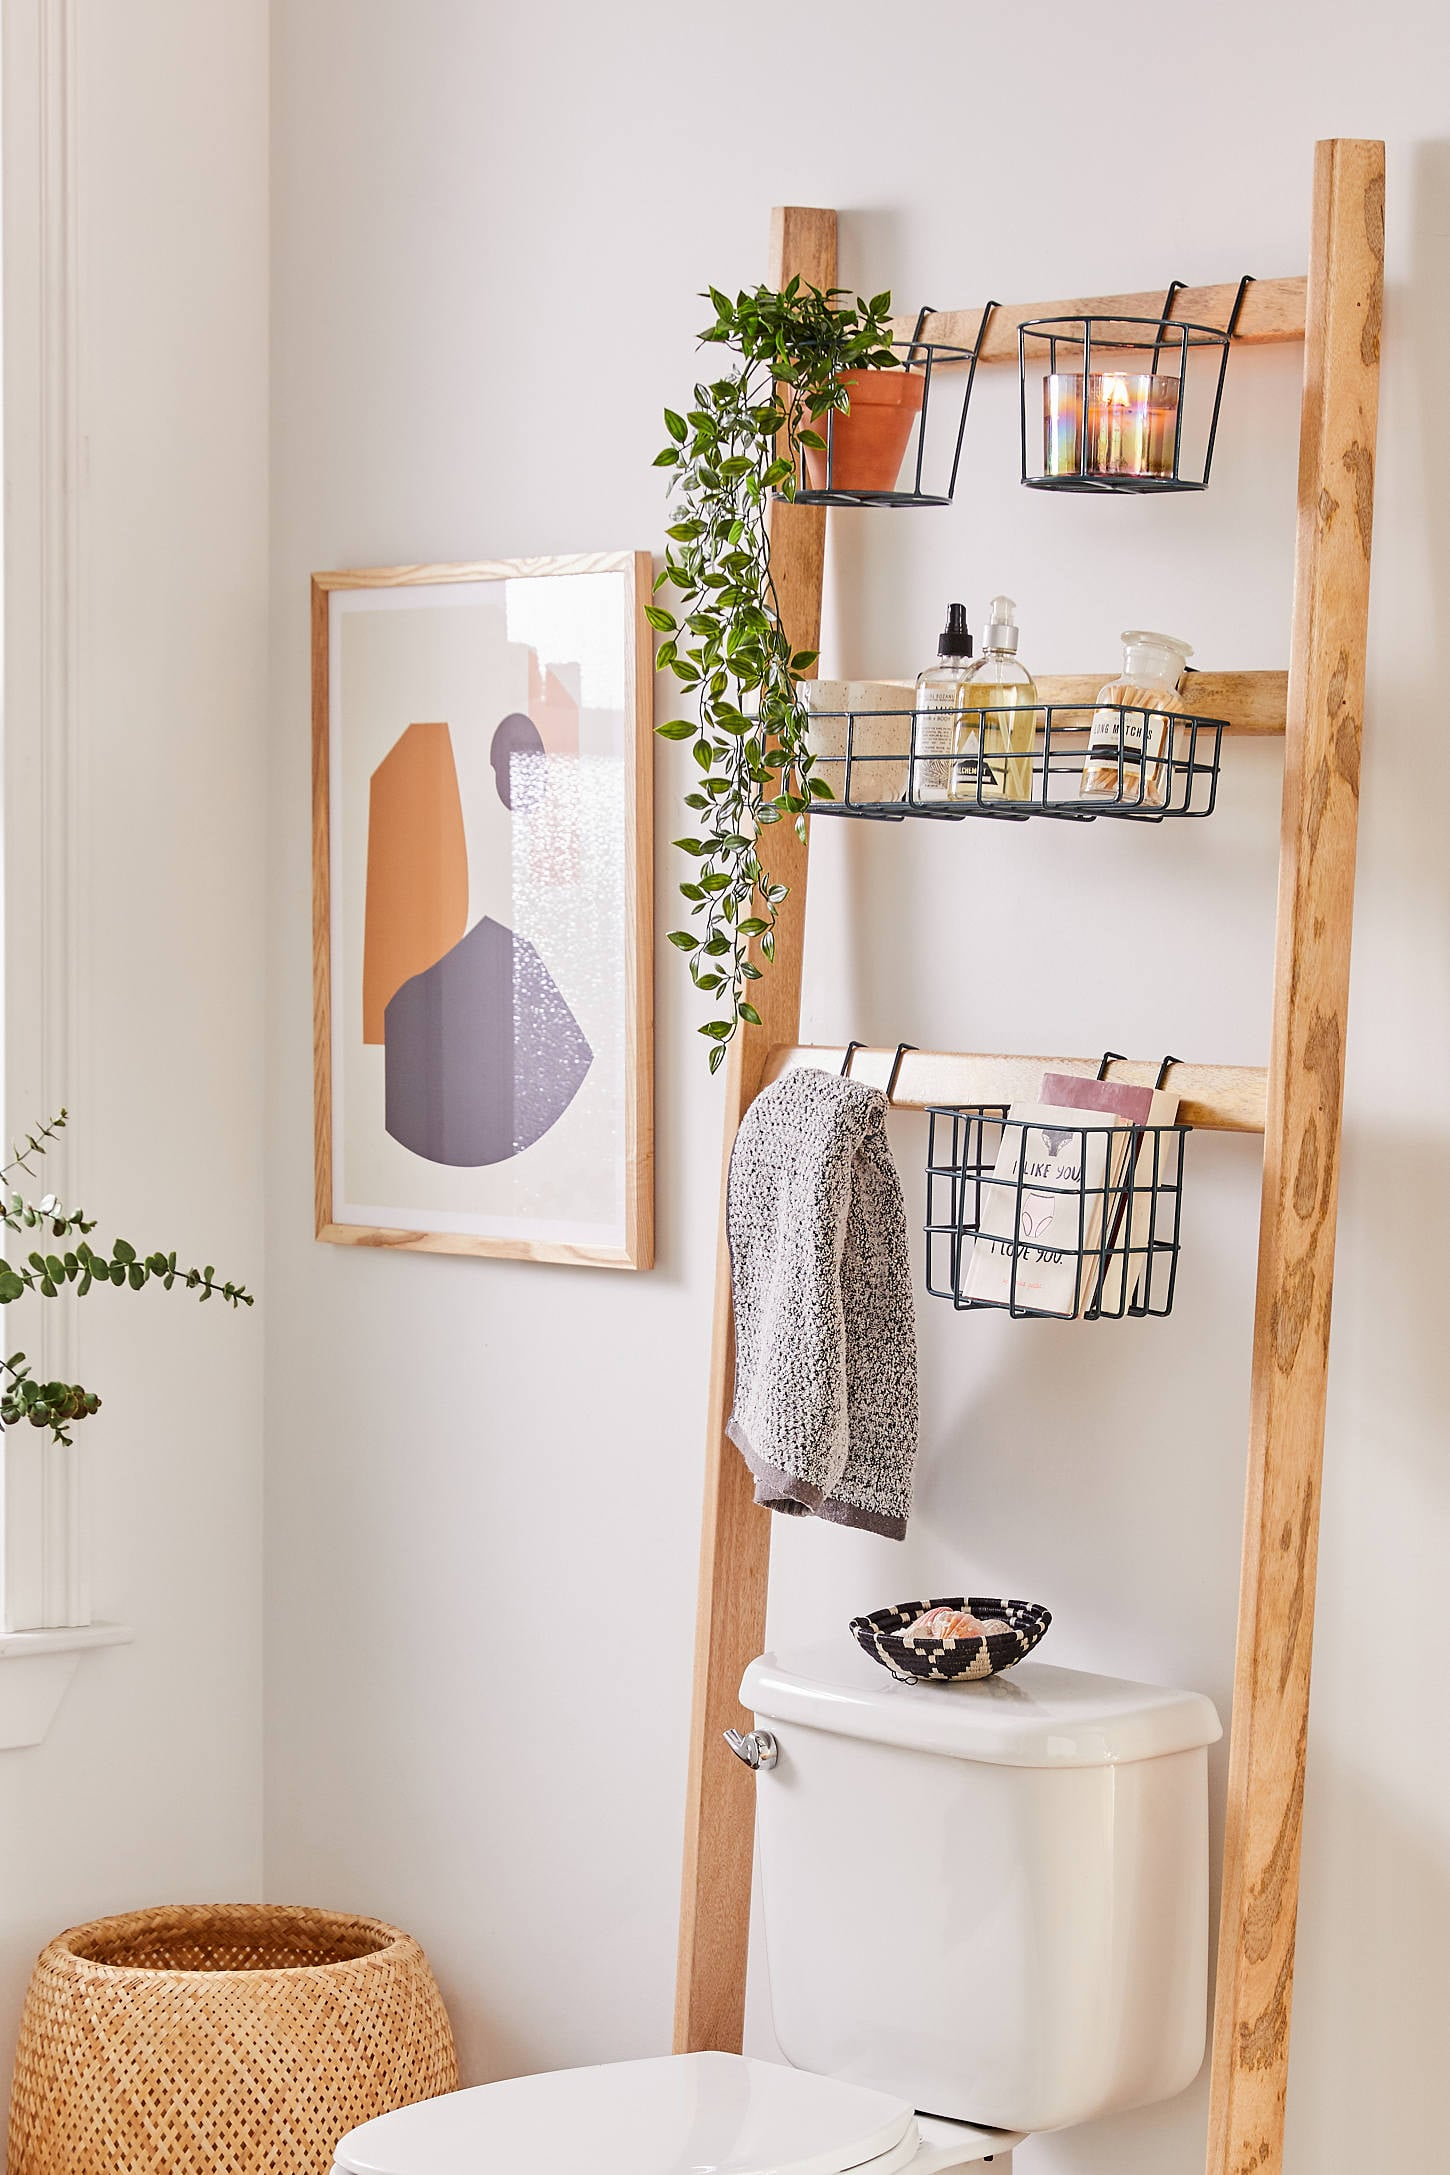 Ladder storage with metal basket above toilet